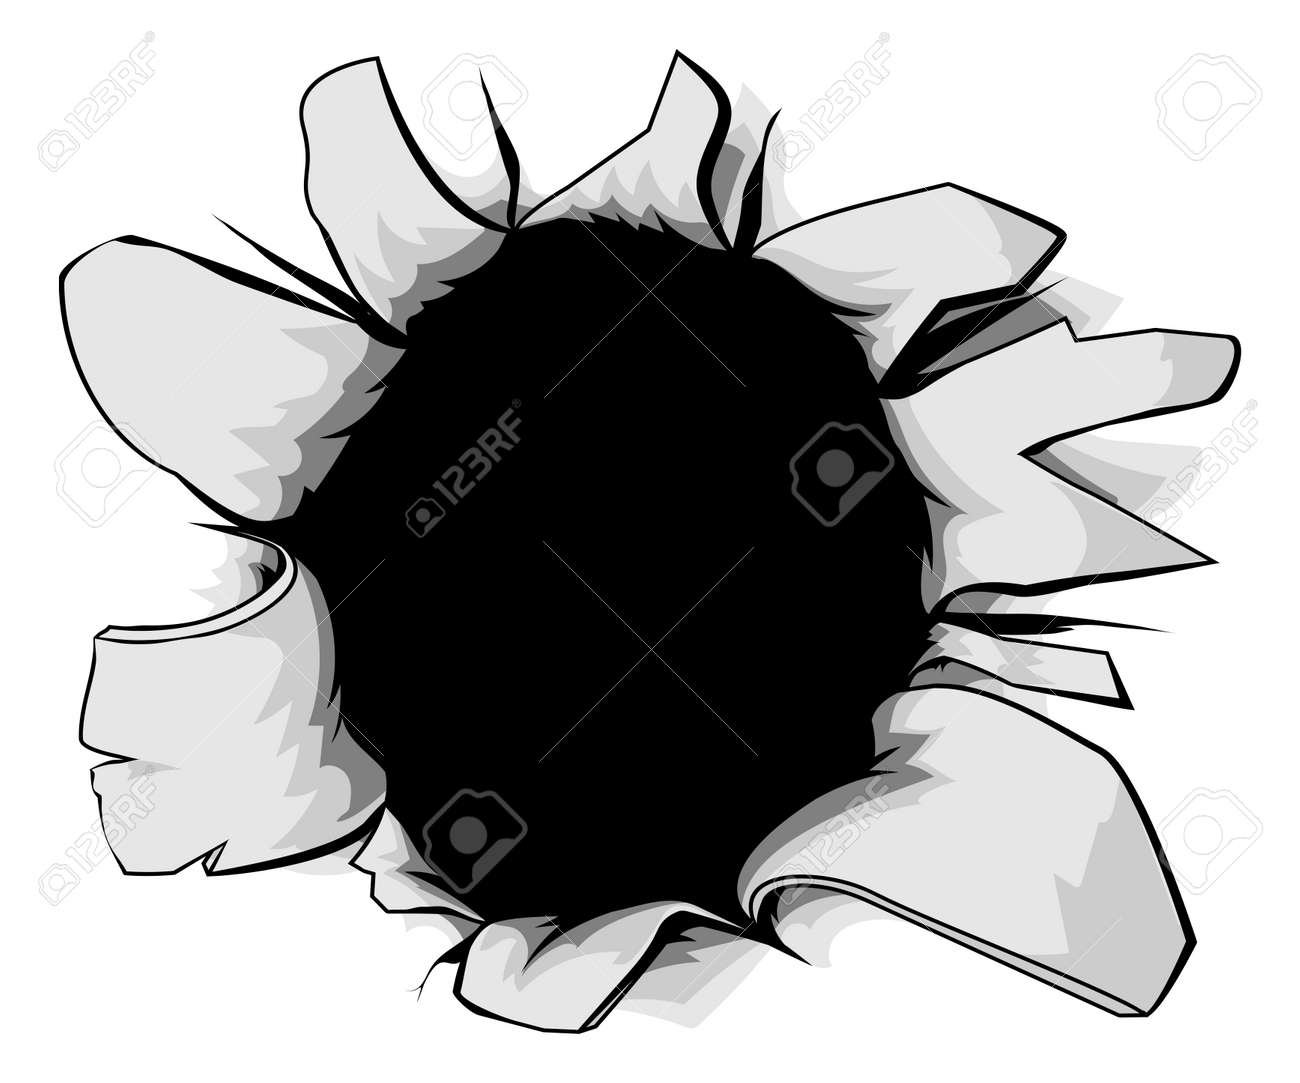 A Torn Circular Hole Perhaps A Bullet Hole From A Gunshot Royalty Free Cliparts Vectors And Stock Illustration Image 31074167 Bullet cartoon png collections download alot of images for bullet cartoon download free with bullet cartoon free png stock. a torn circular hole perhaps a bullet hole from a gunshot